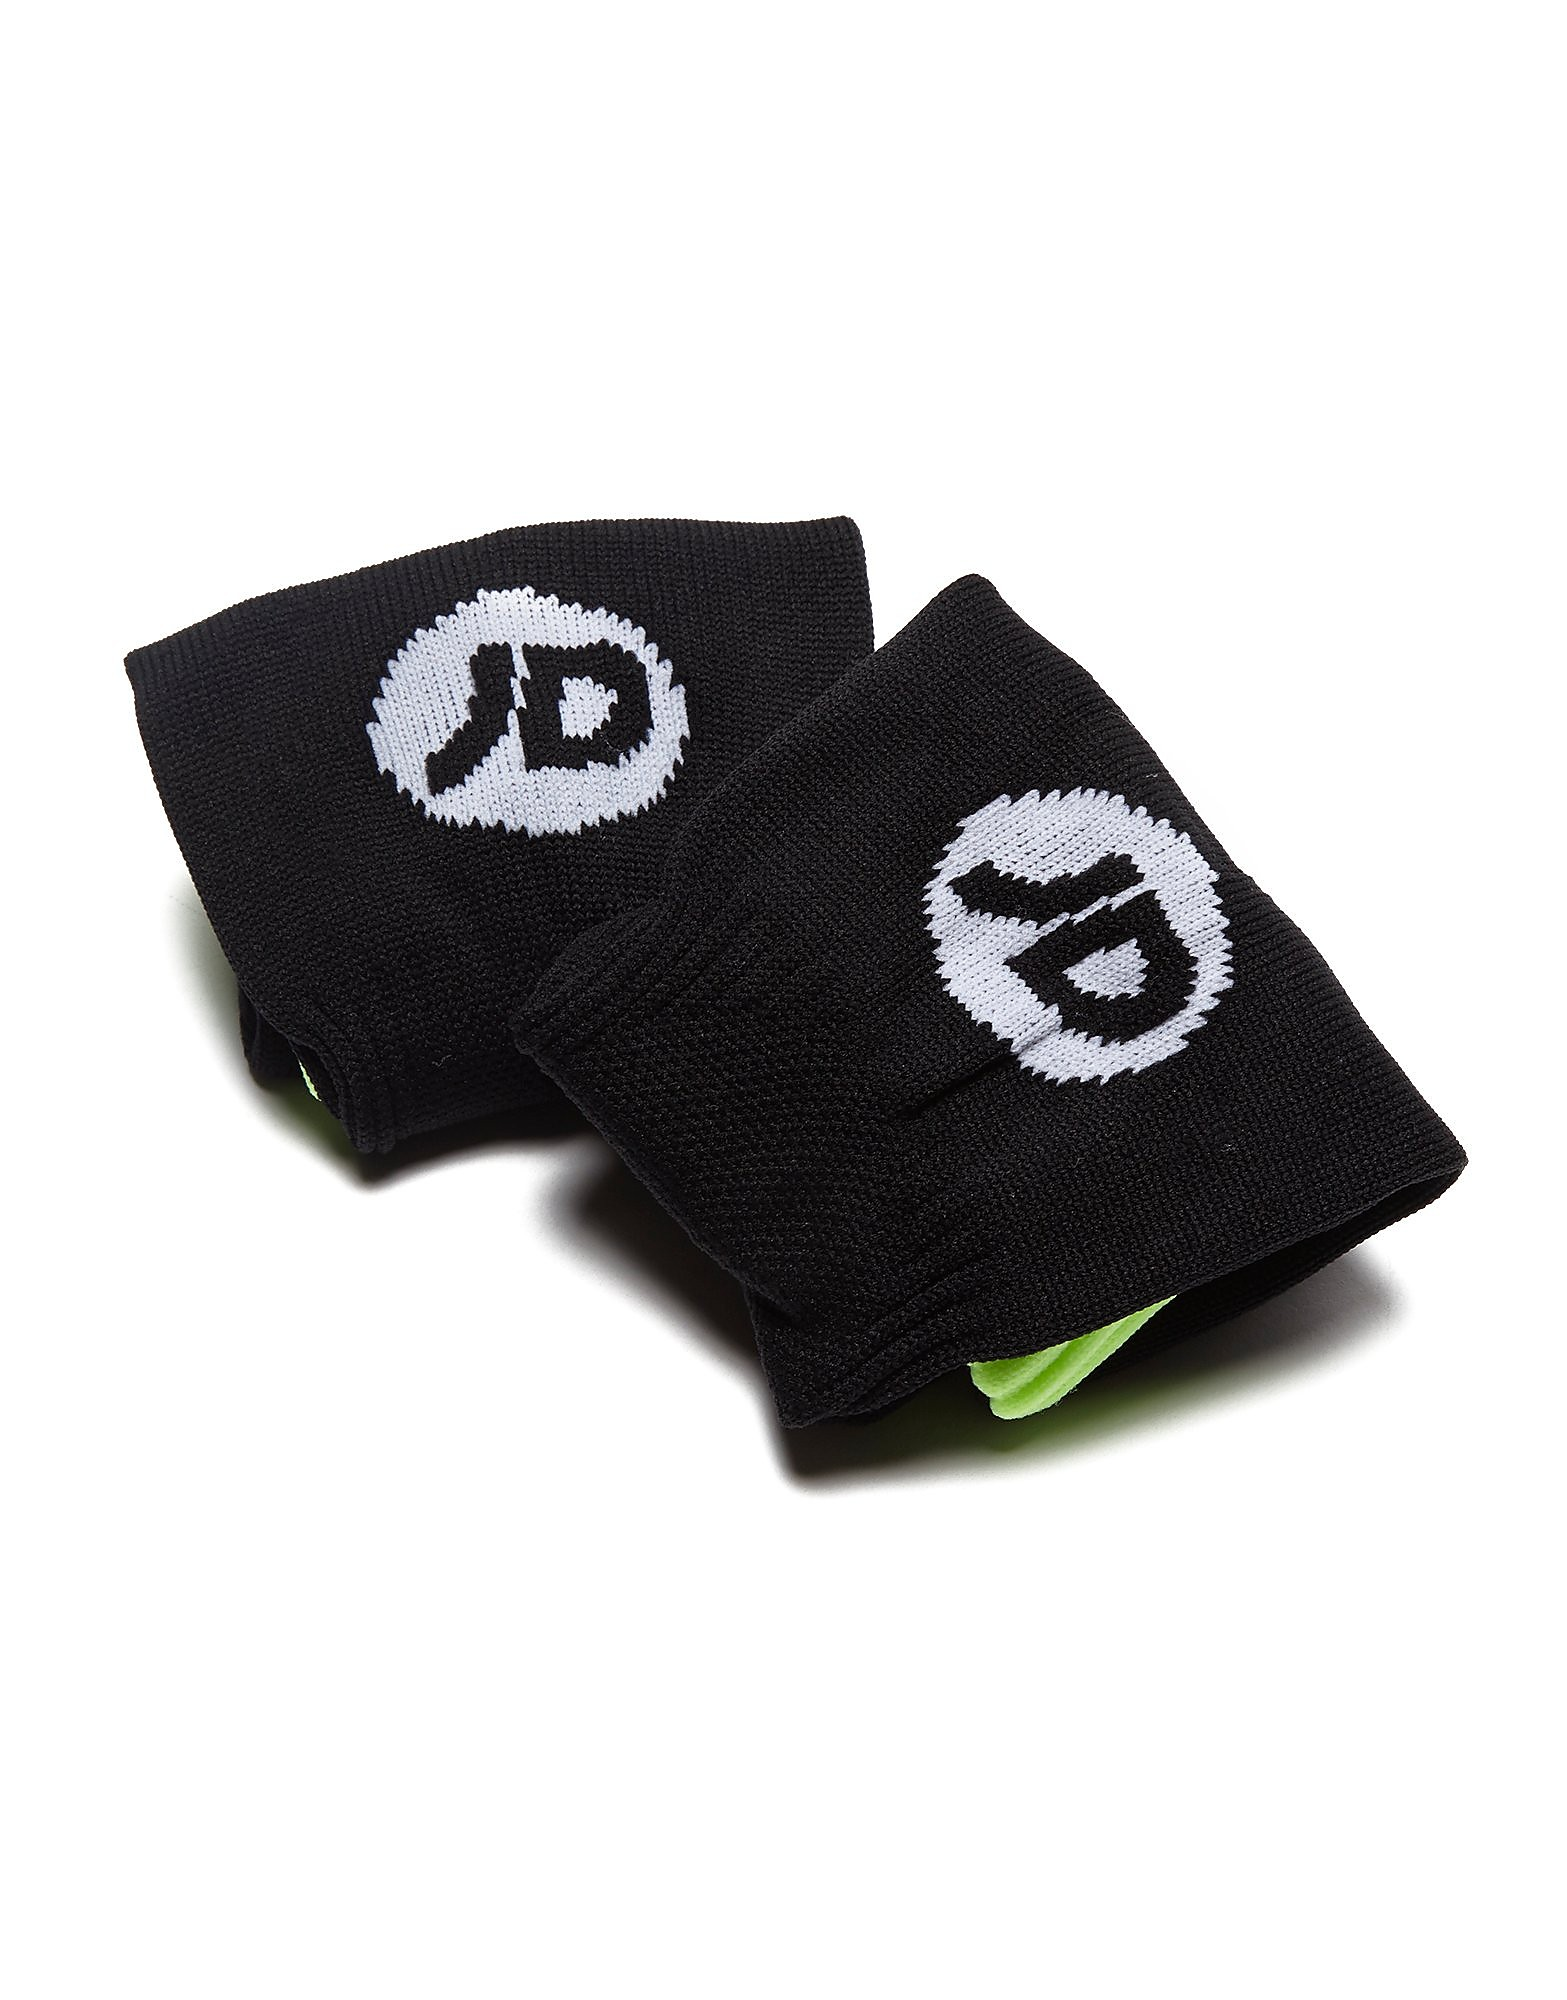 JD AFC Bournemouth 2016/17 Third Socks Junior